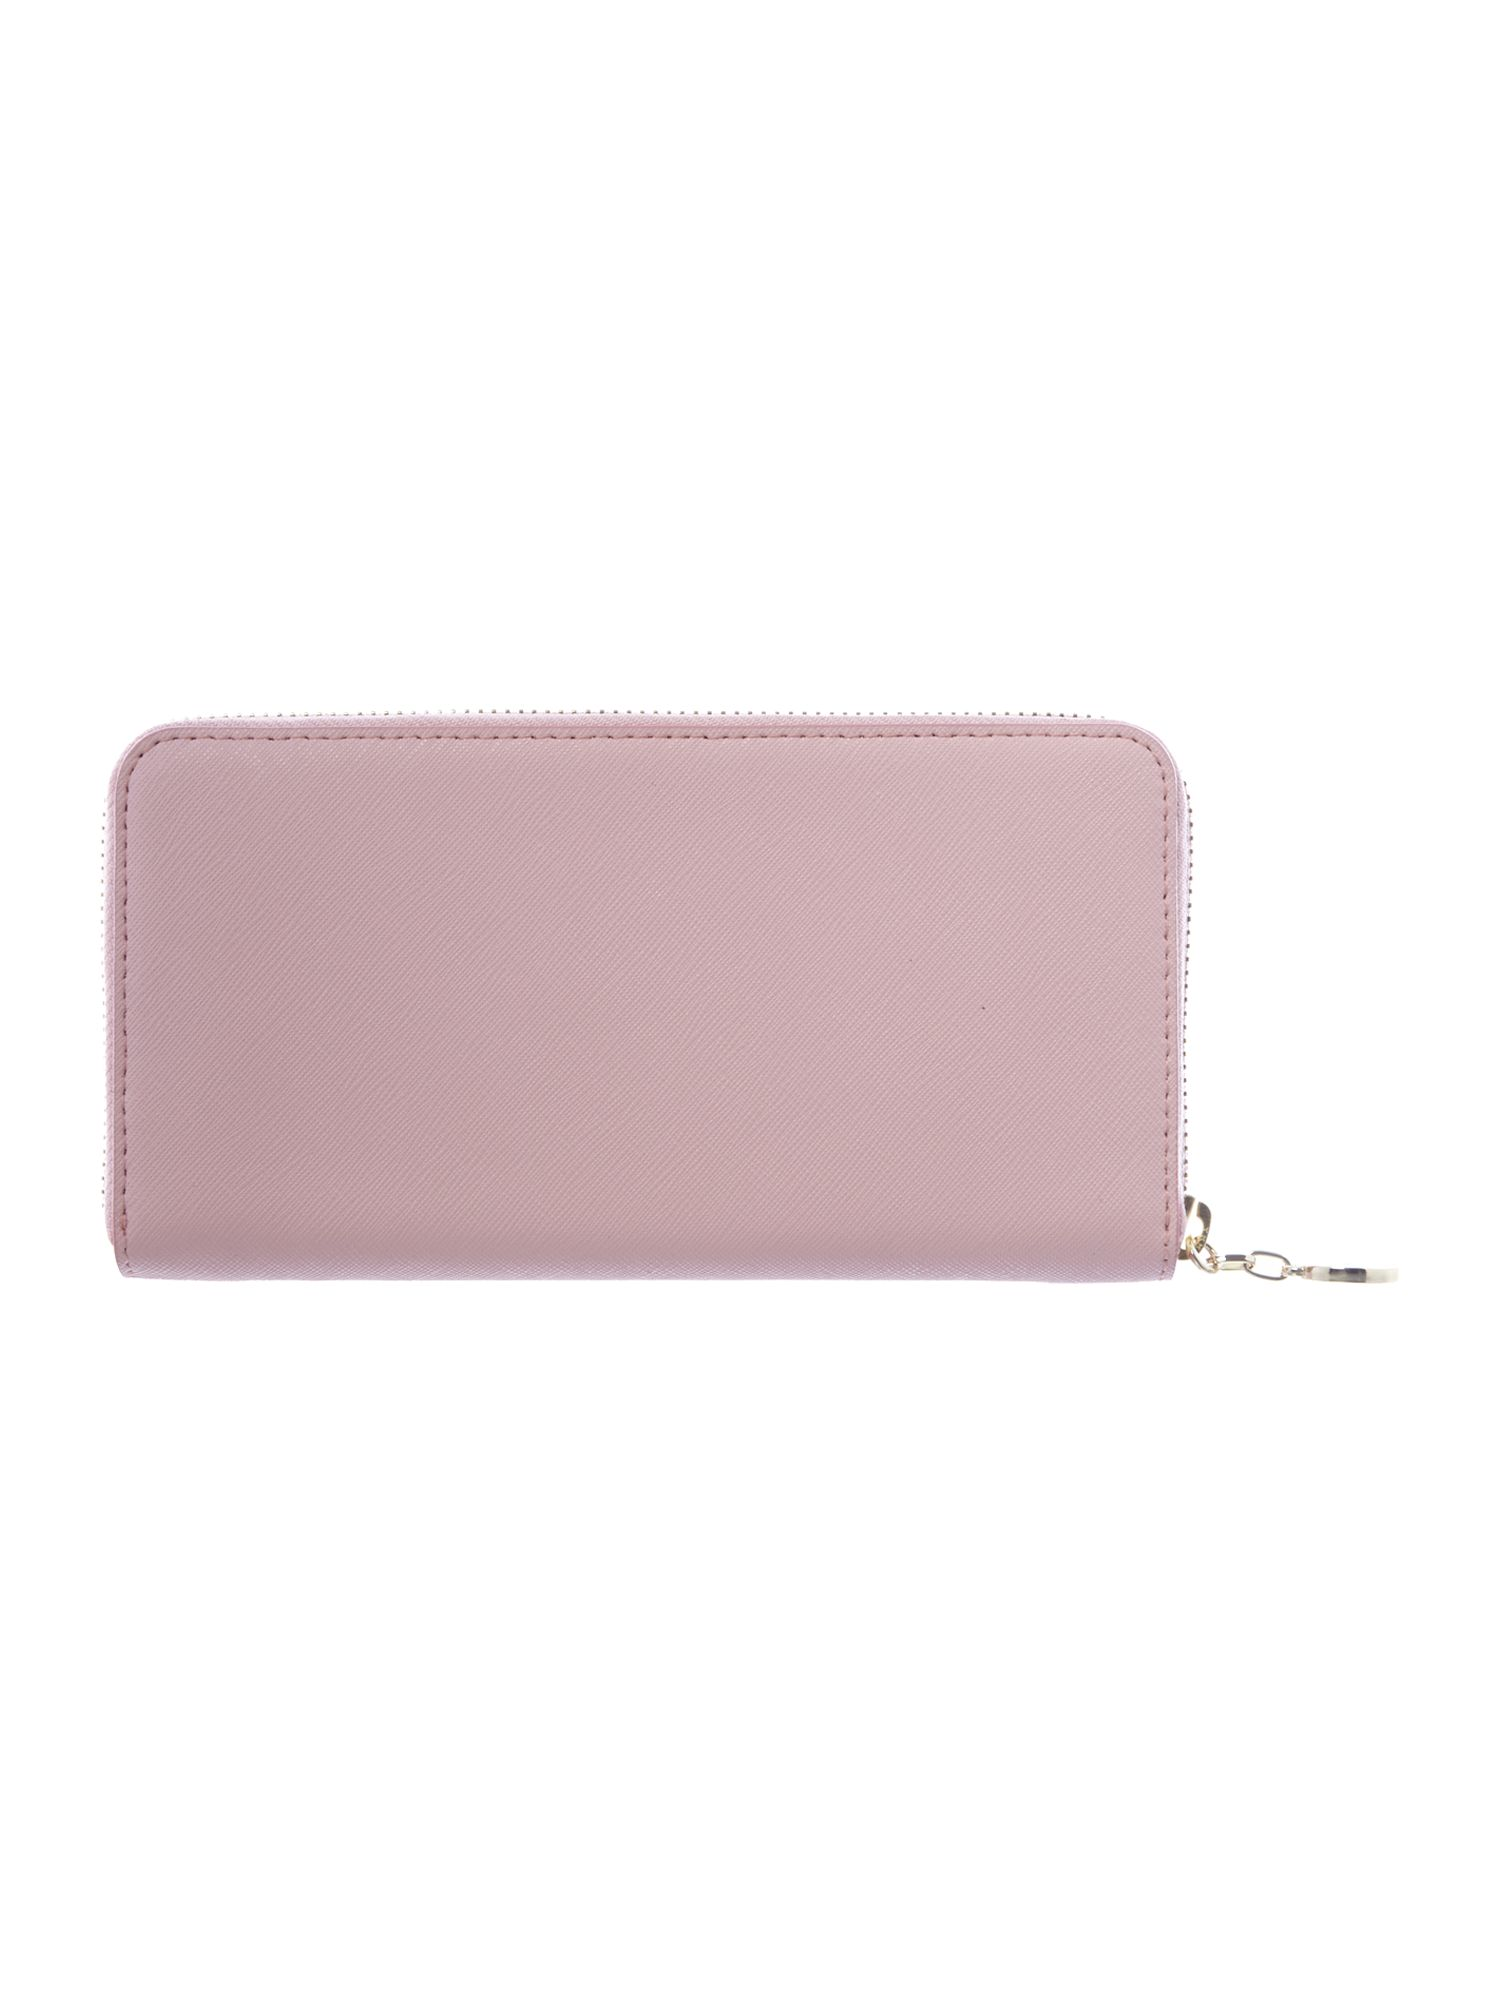 Saffiano pink large zip around purse